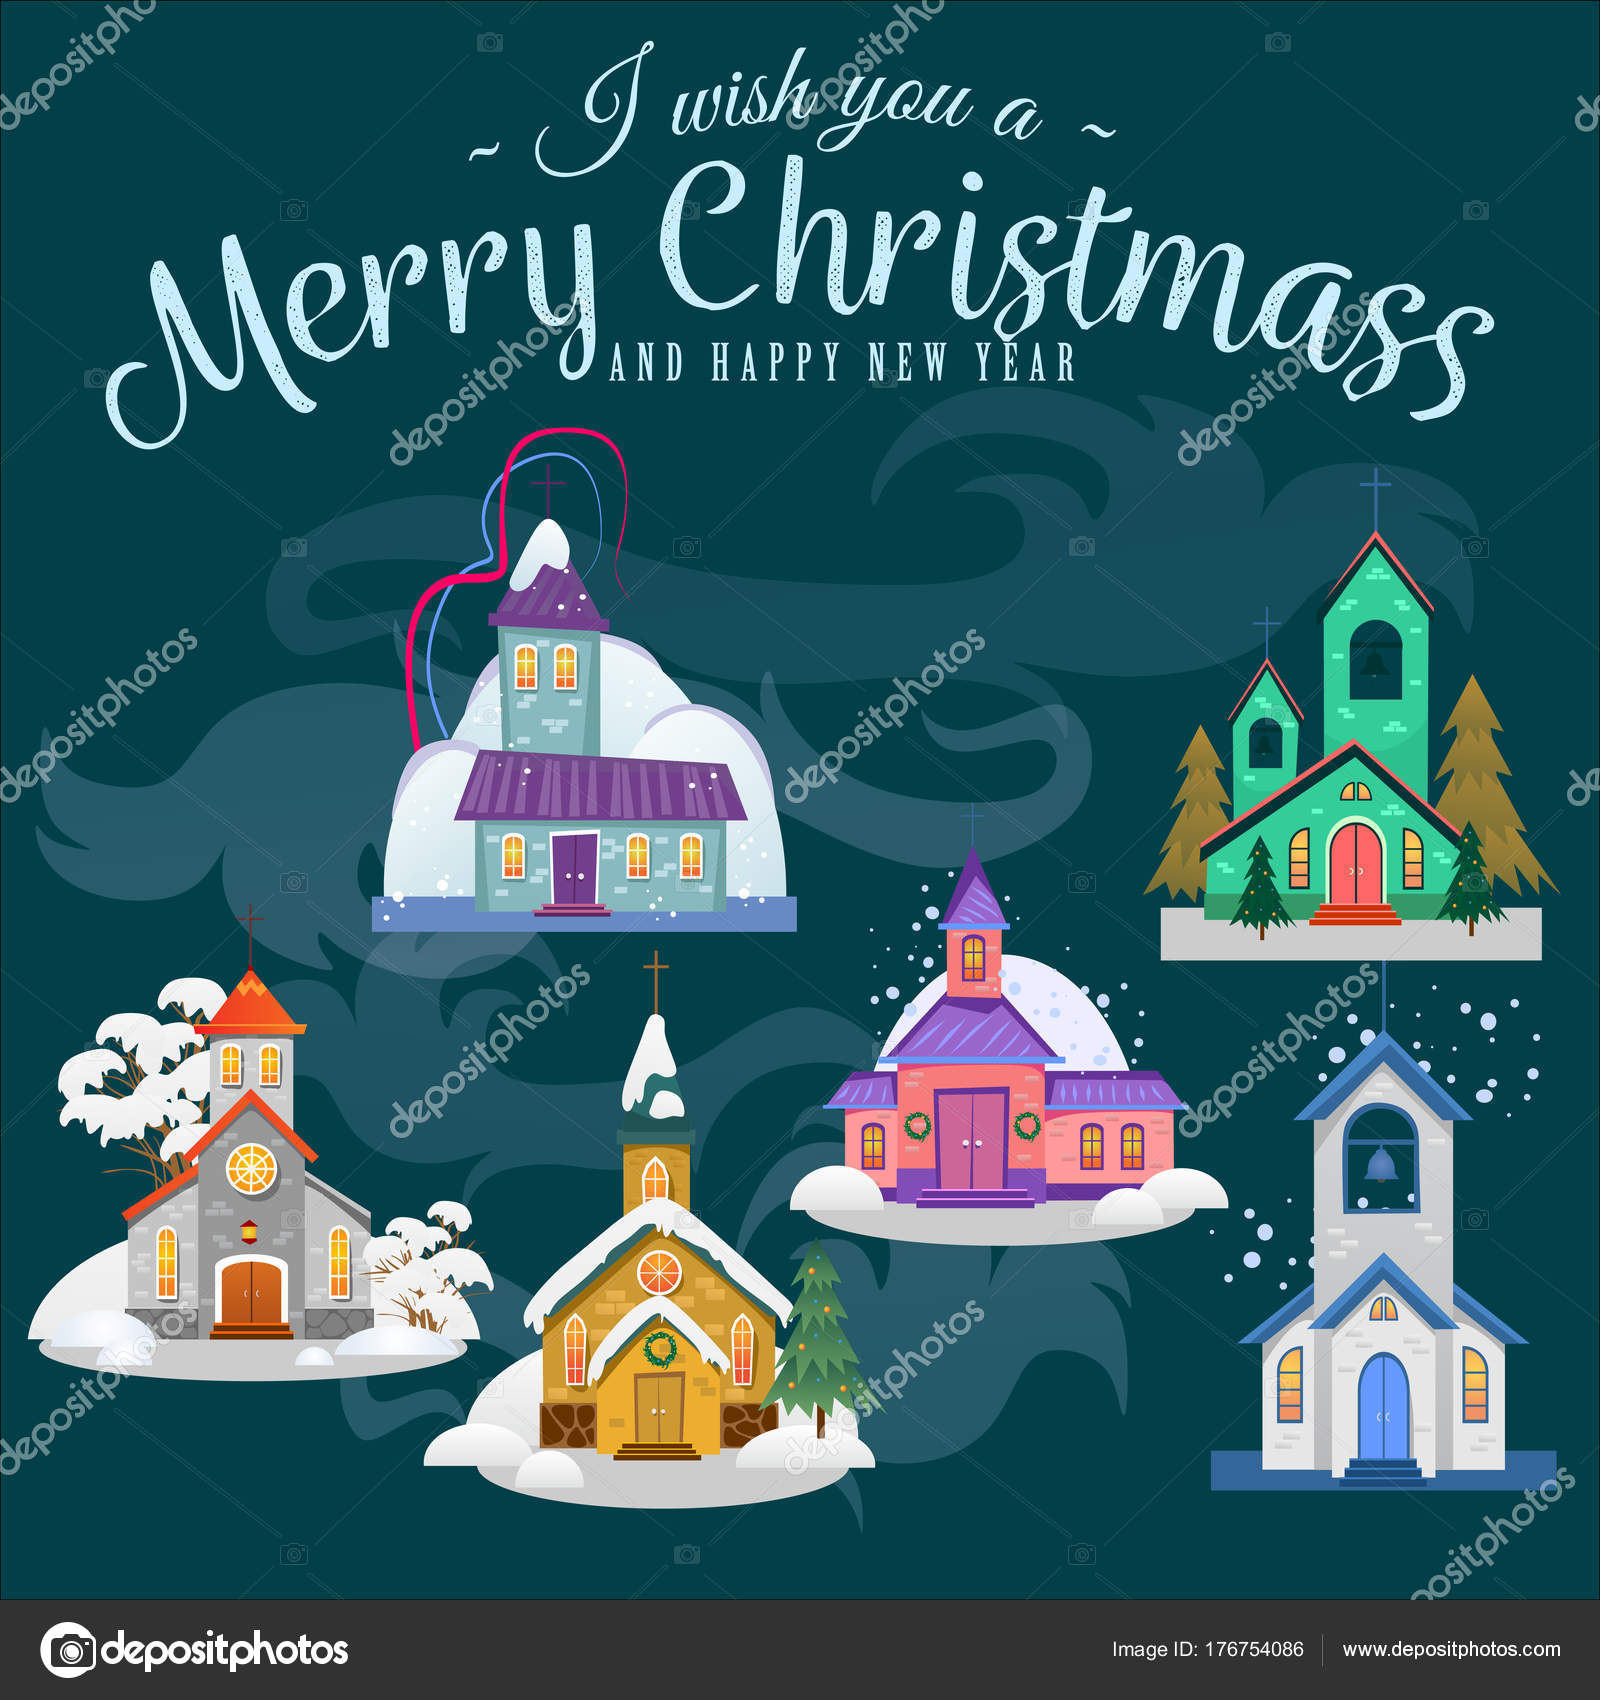 merry christmas and happy new year card church and green tree under snow christianity and catholic winter city cathedral vector illustration